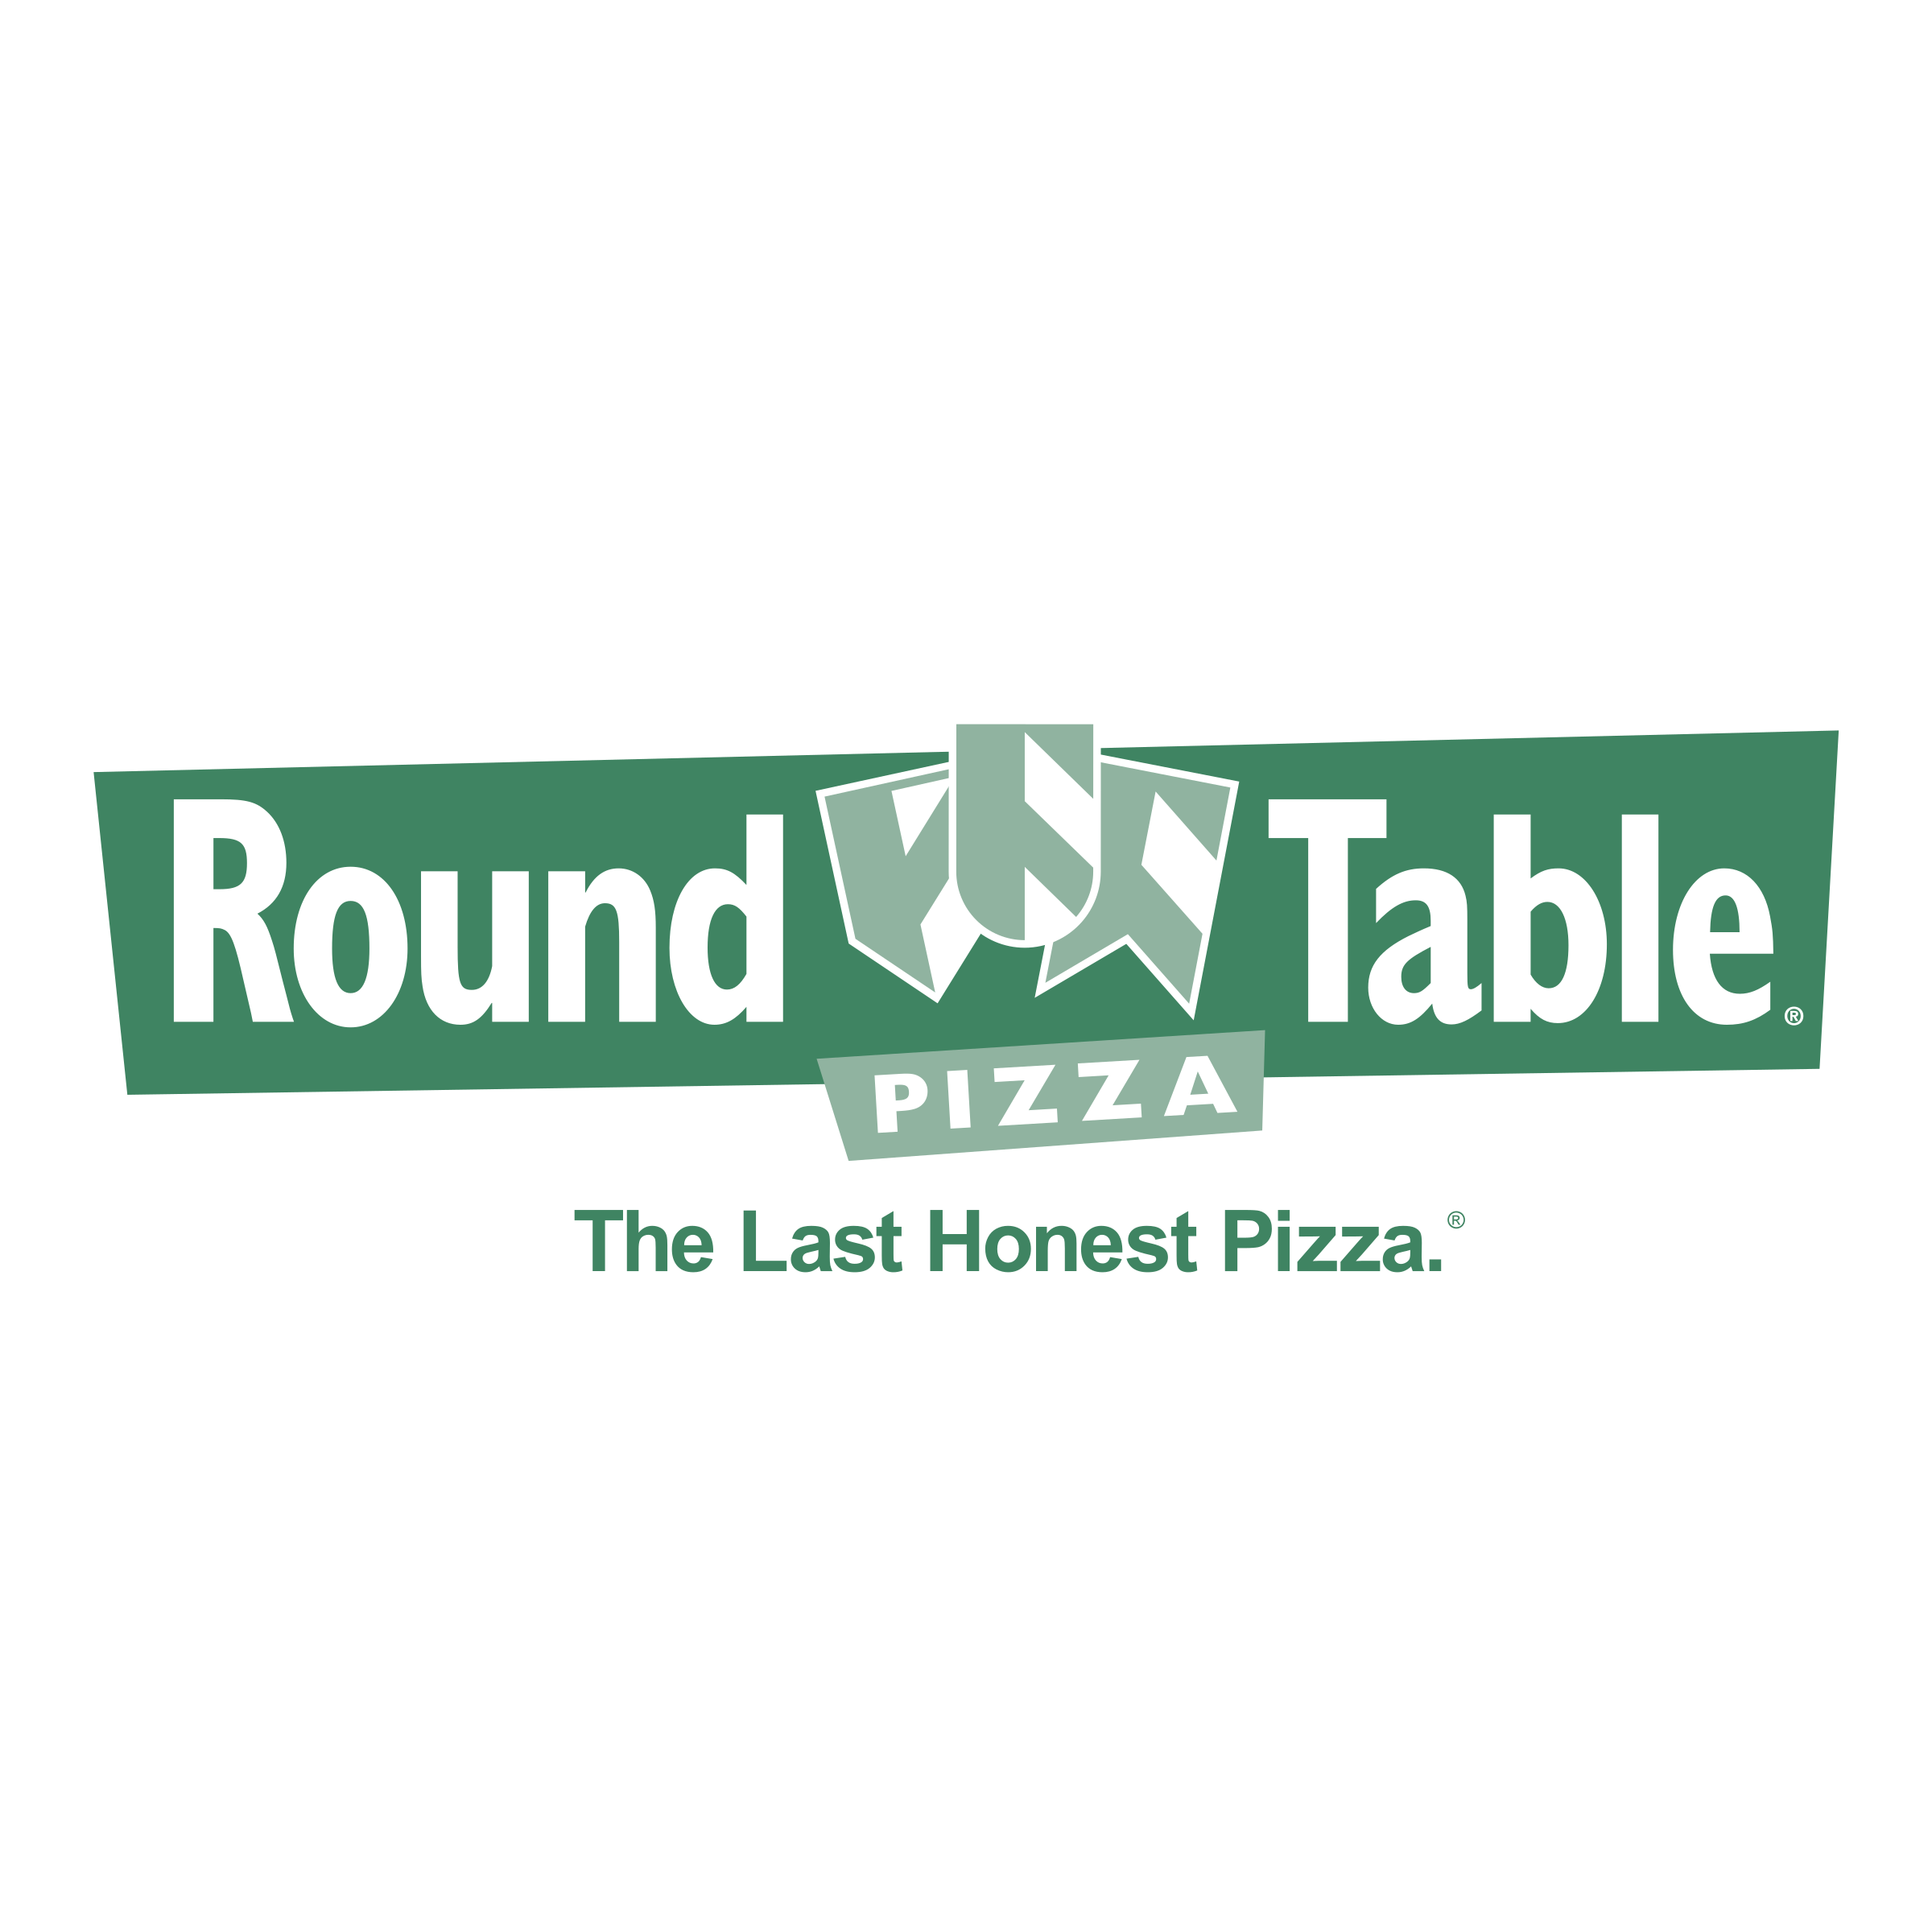 Round table pizza login - Round table pizza university place ...